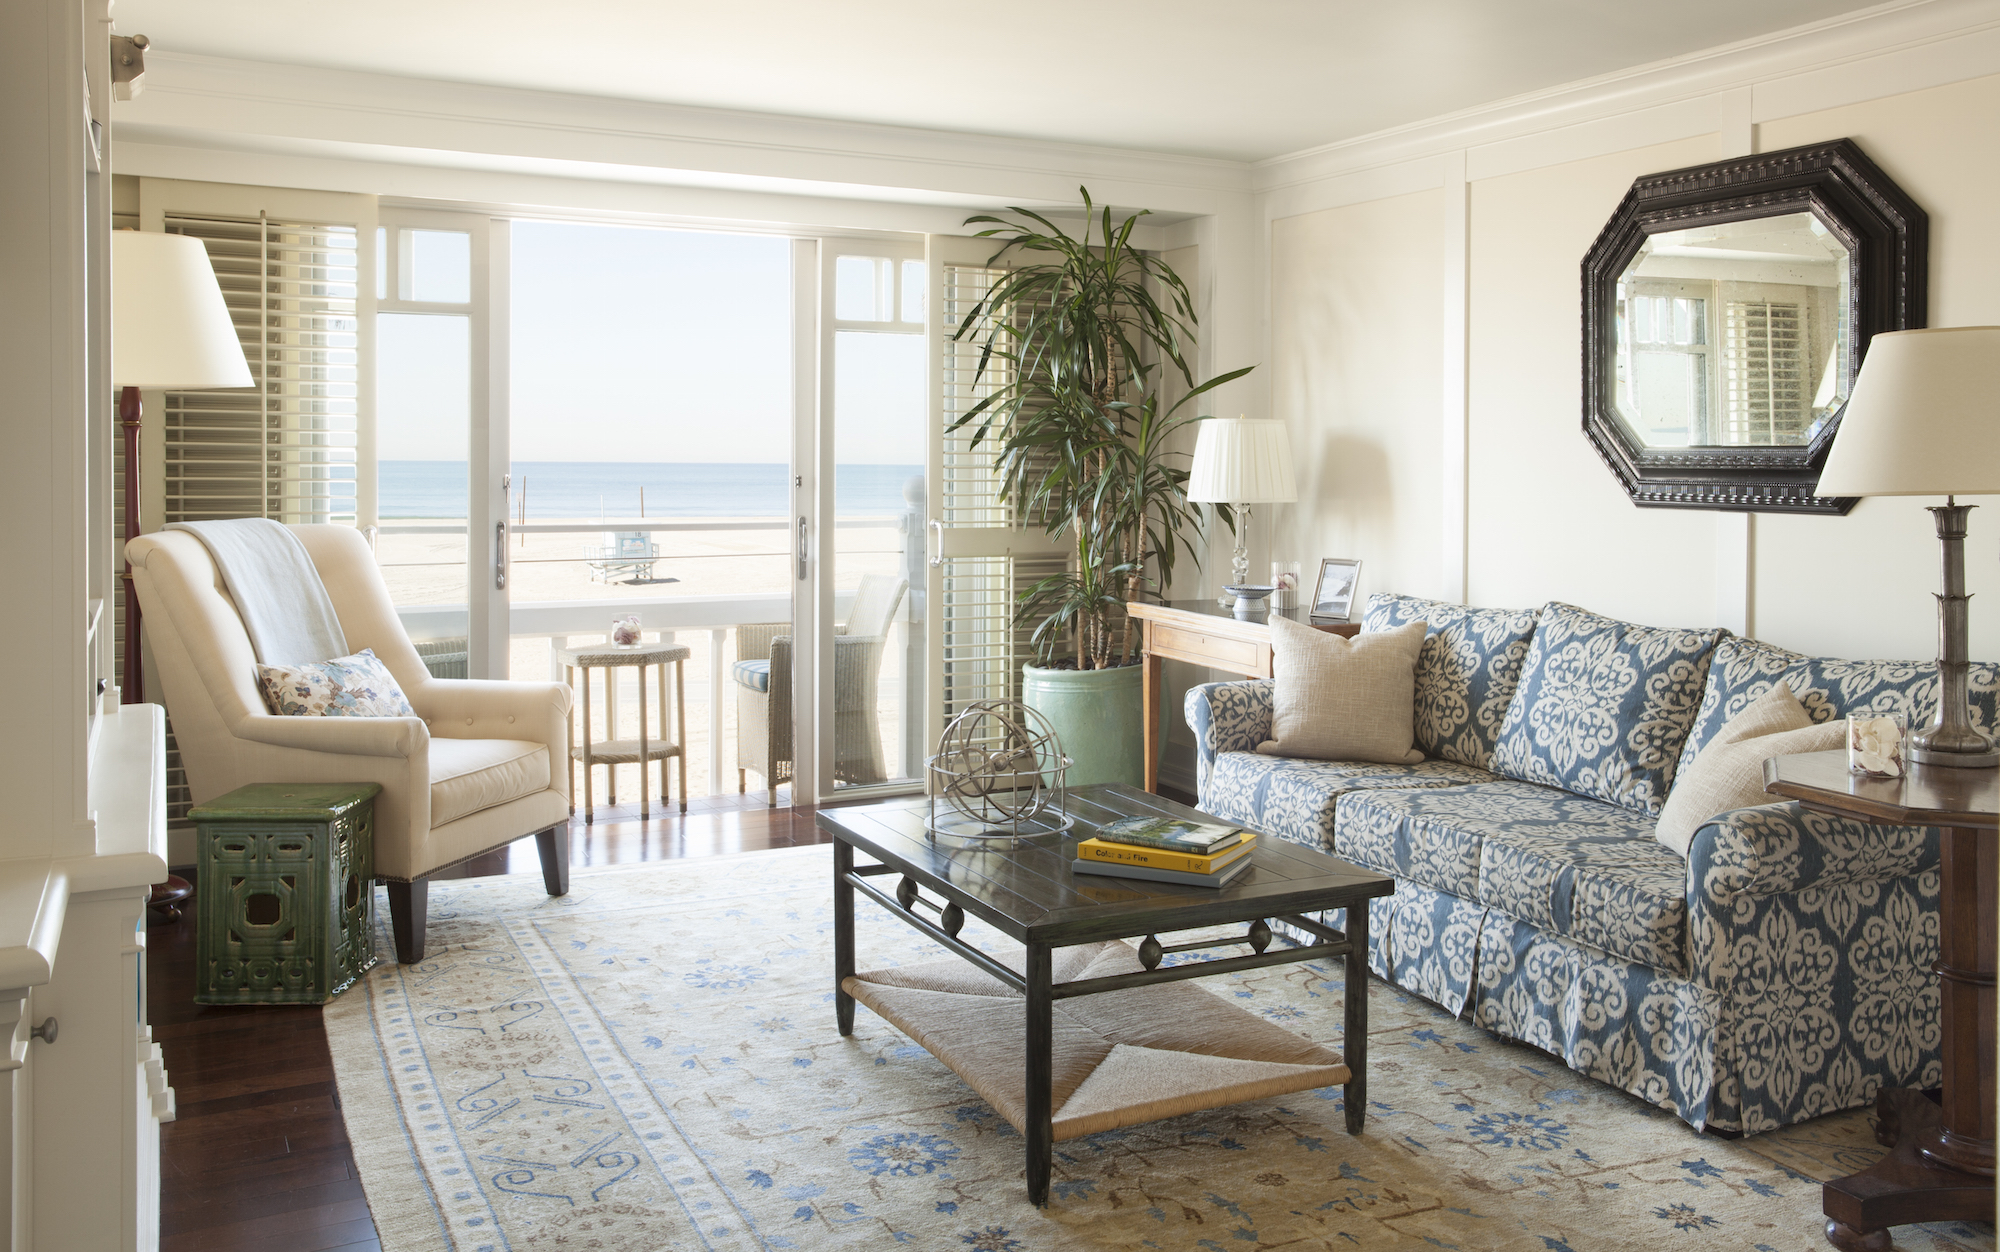 Santa Monica Hotel - Luxury Beach Hotel | The Iconic Shutters on the ...